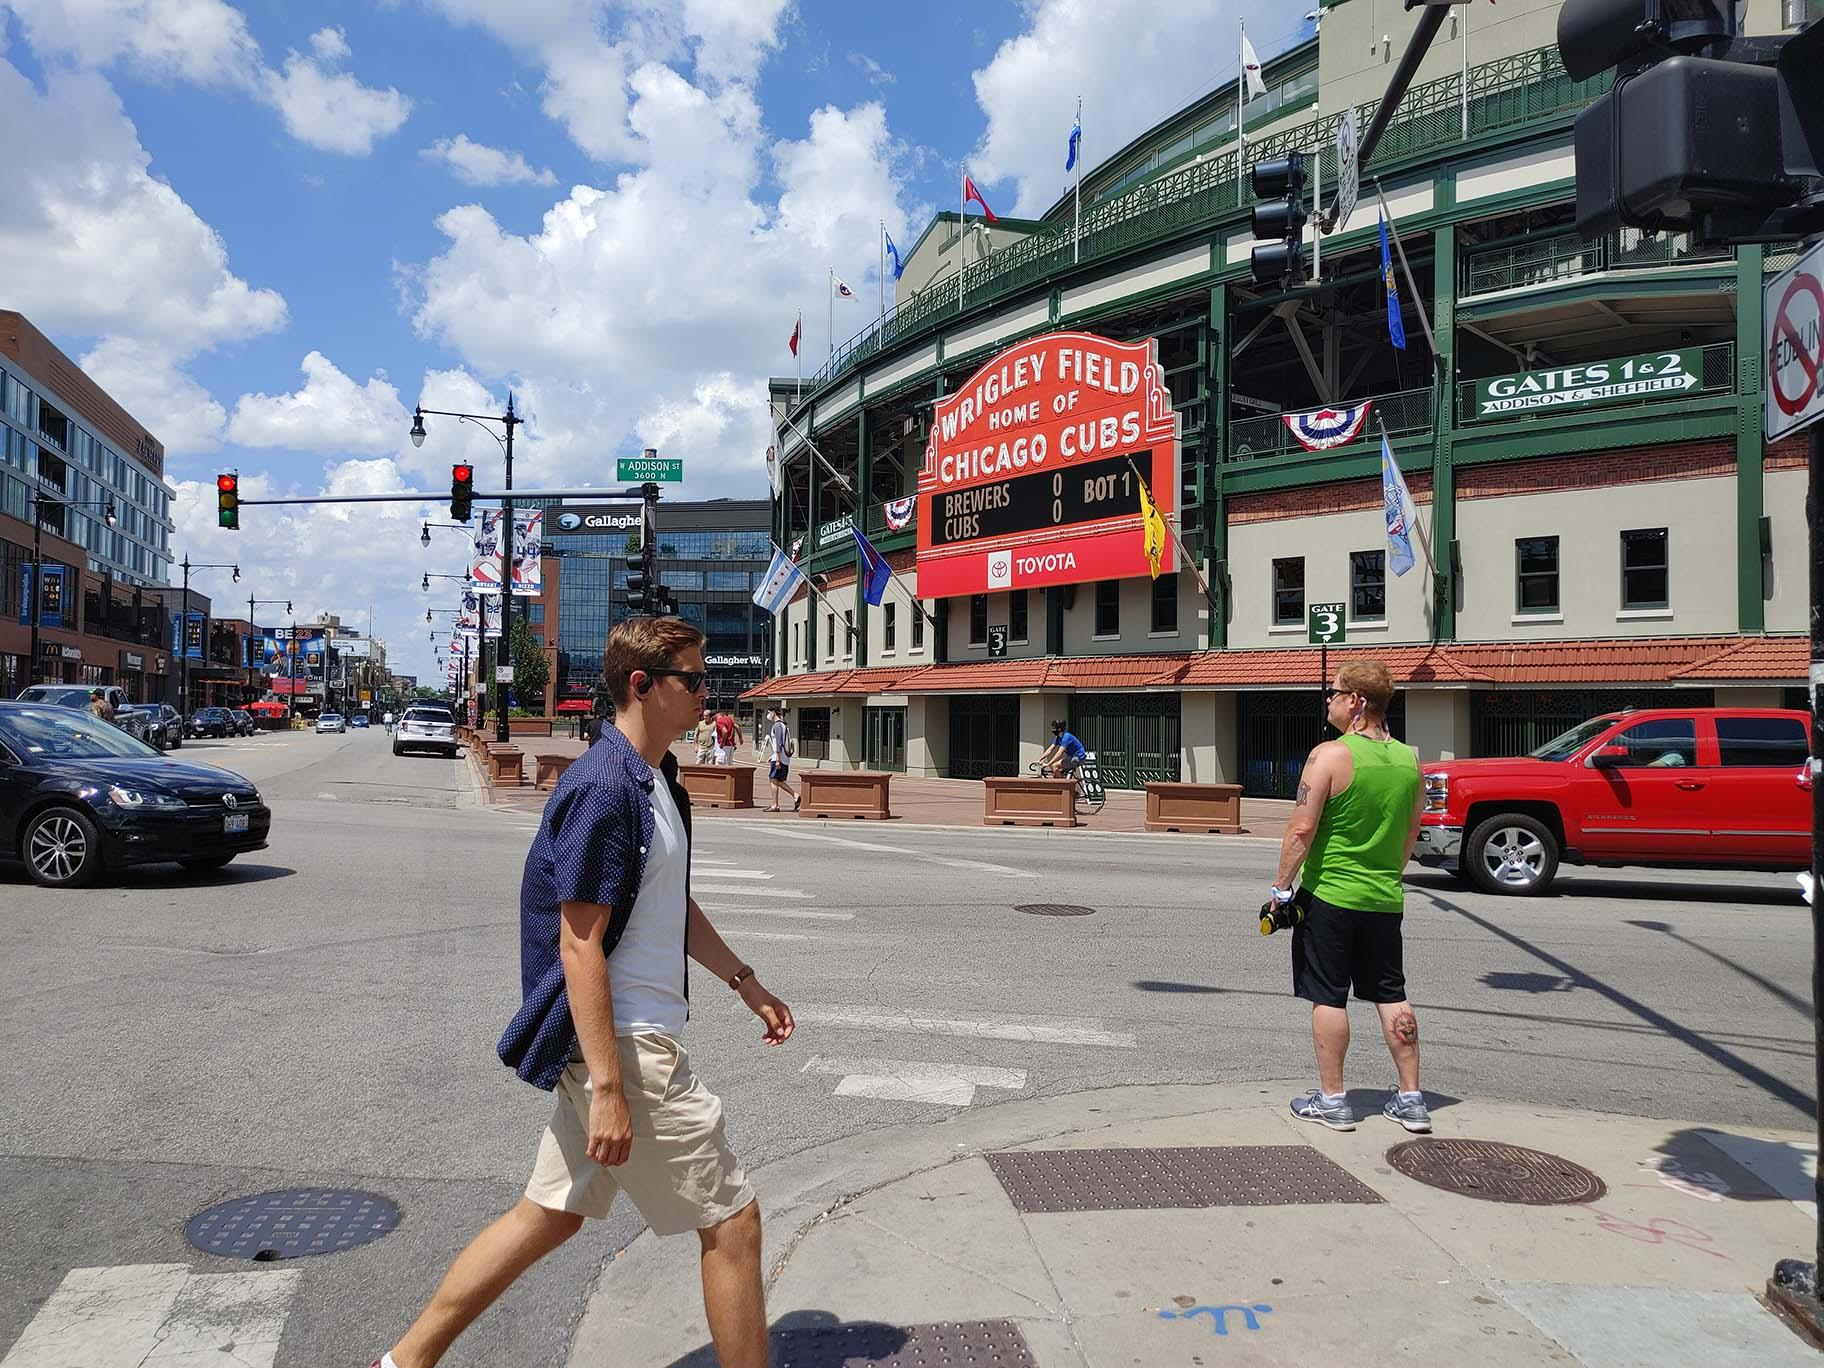 Game day in Wrigleyville on Sunday, July 26, 2020. (Erica Gunderson / WTTW News)